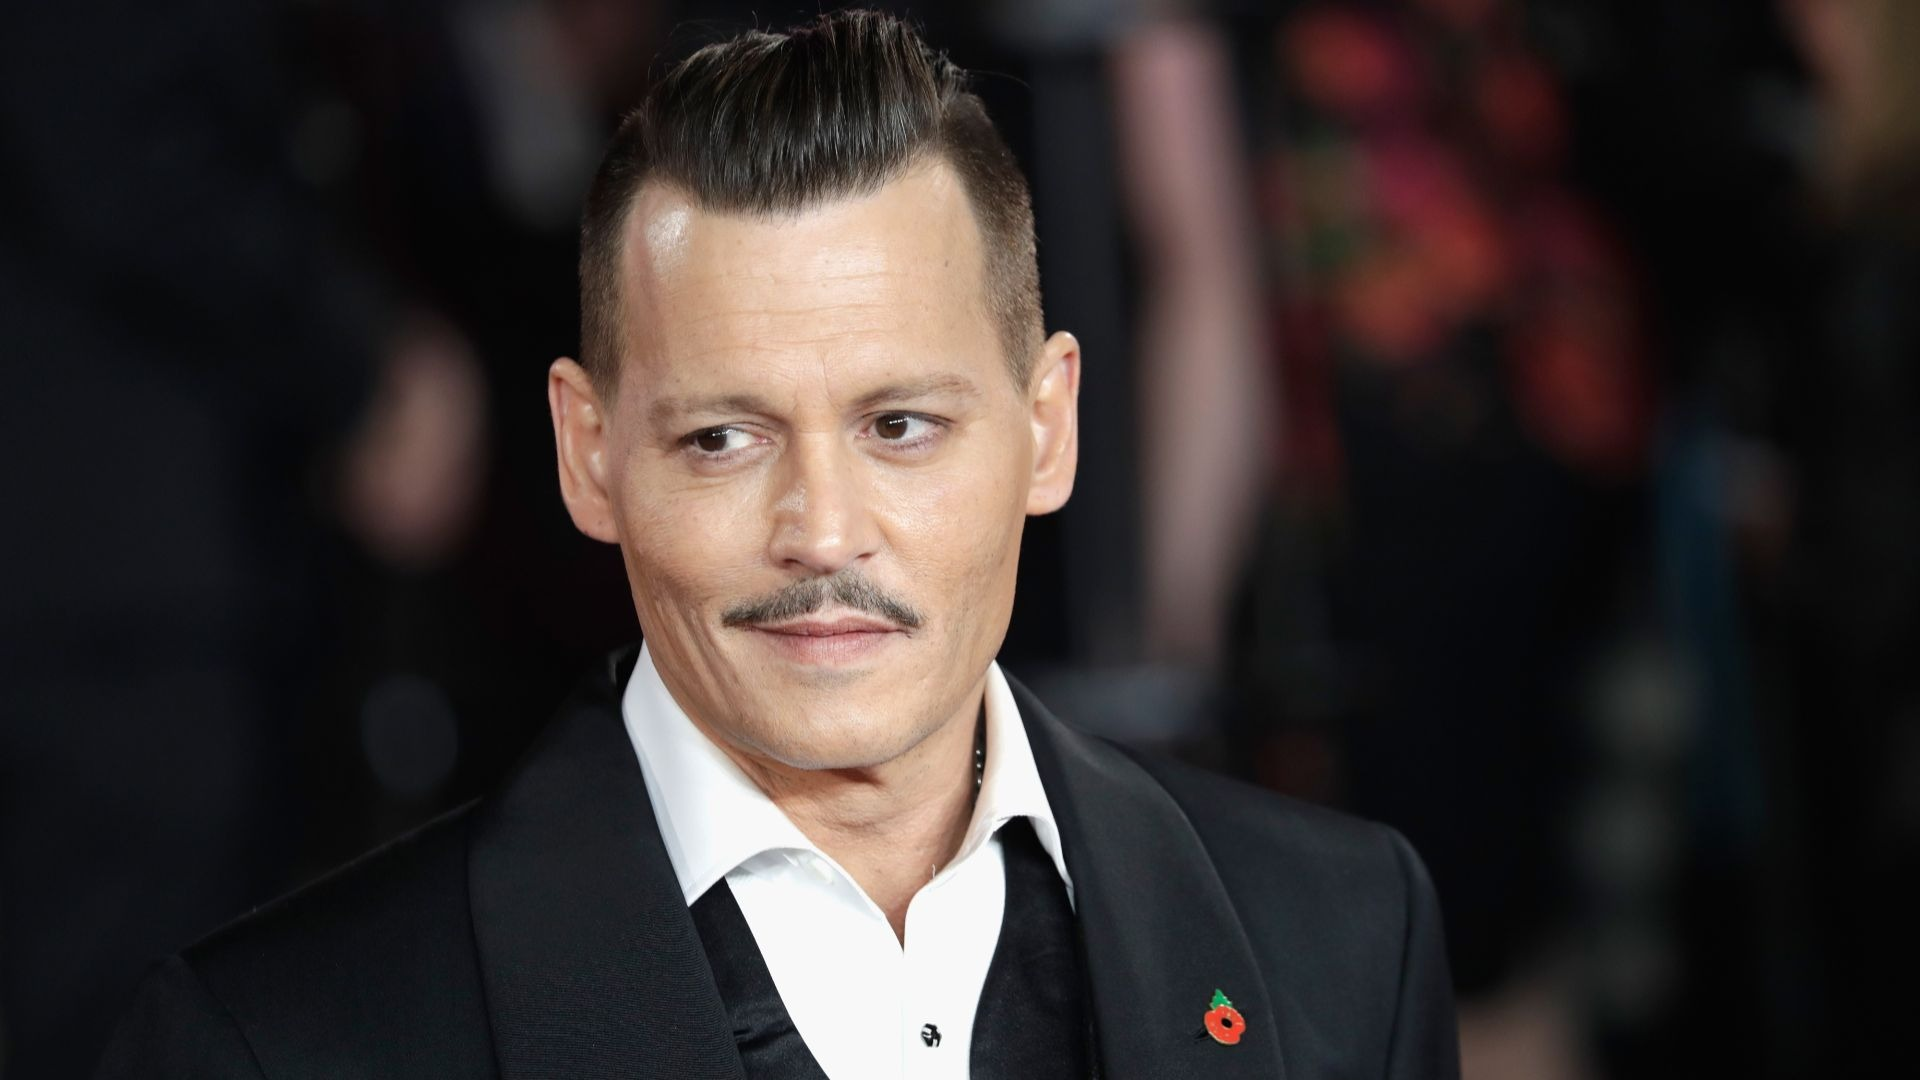 Hey big spender! It's Johnny Depp!